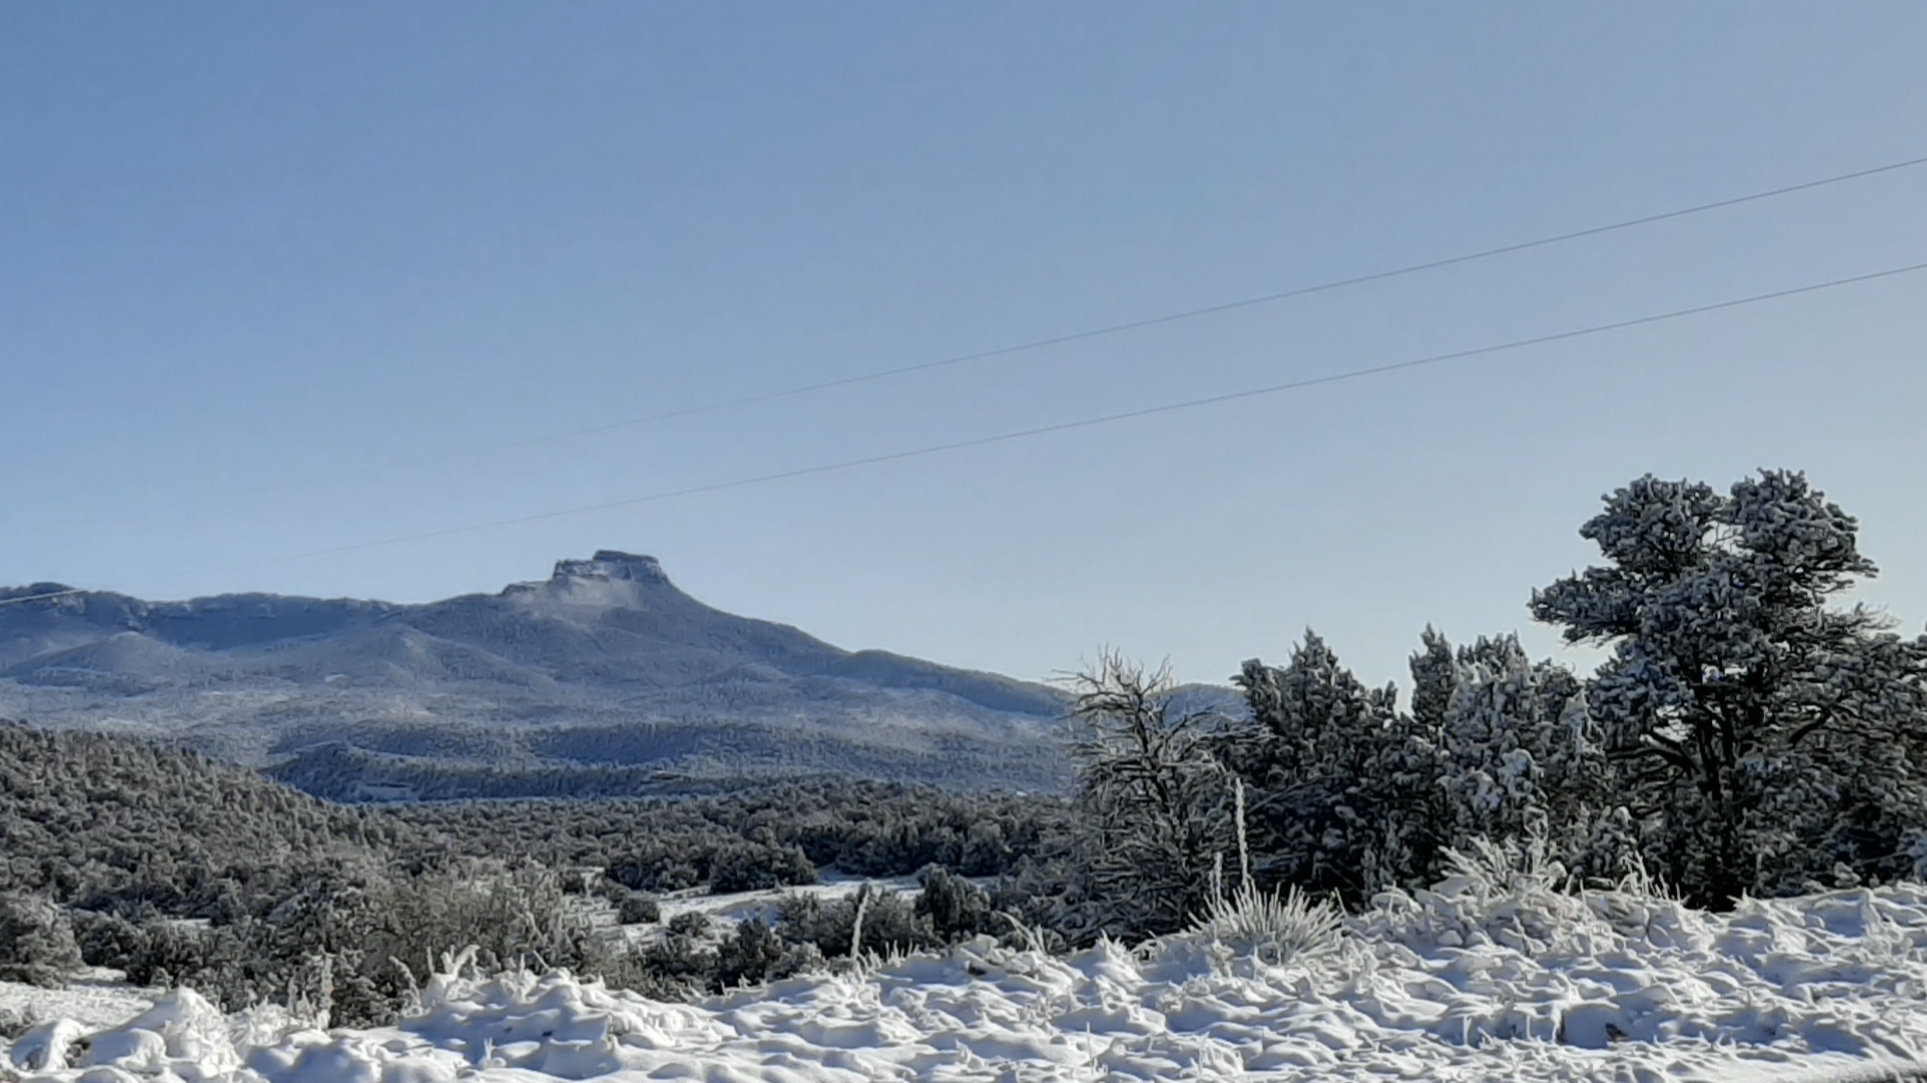 A snowy view of Fisher's Peak from the currently halted Cougar Canyon development.